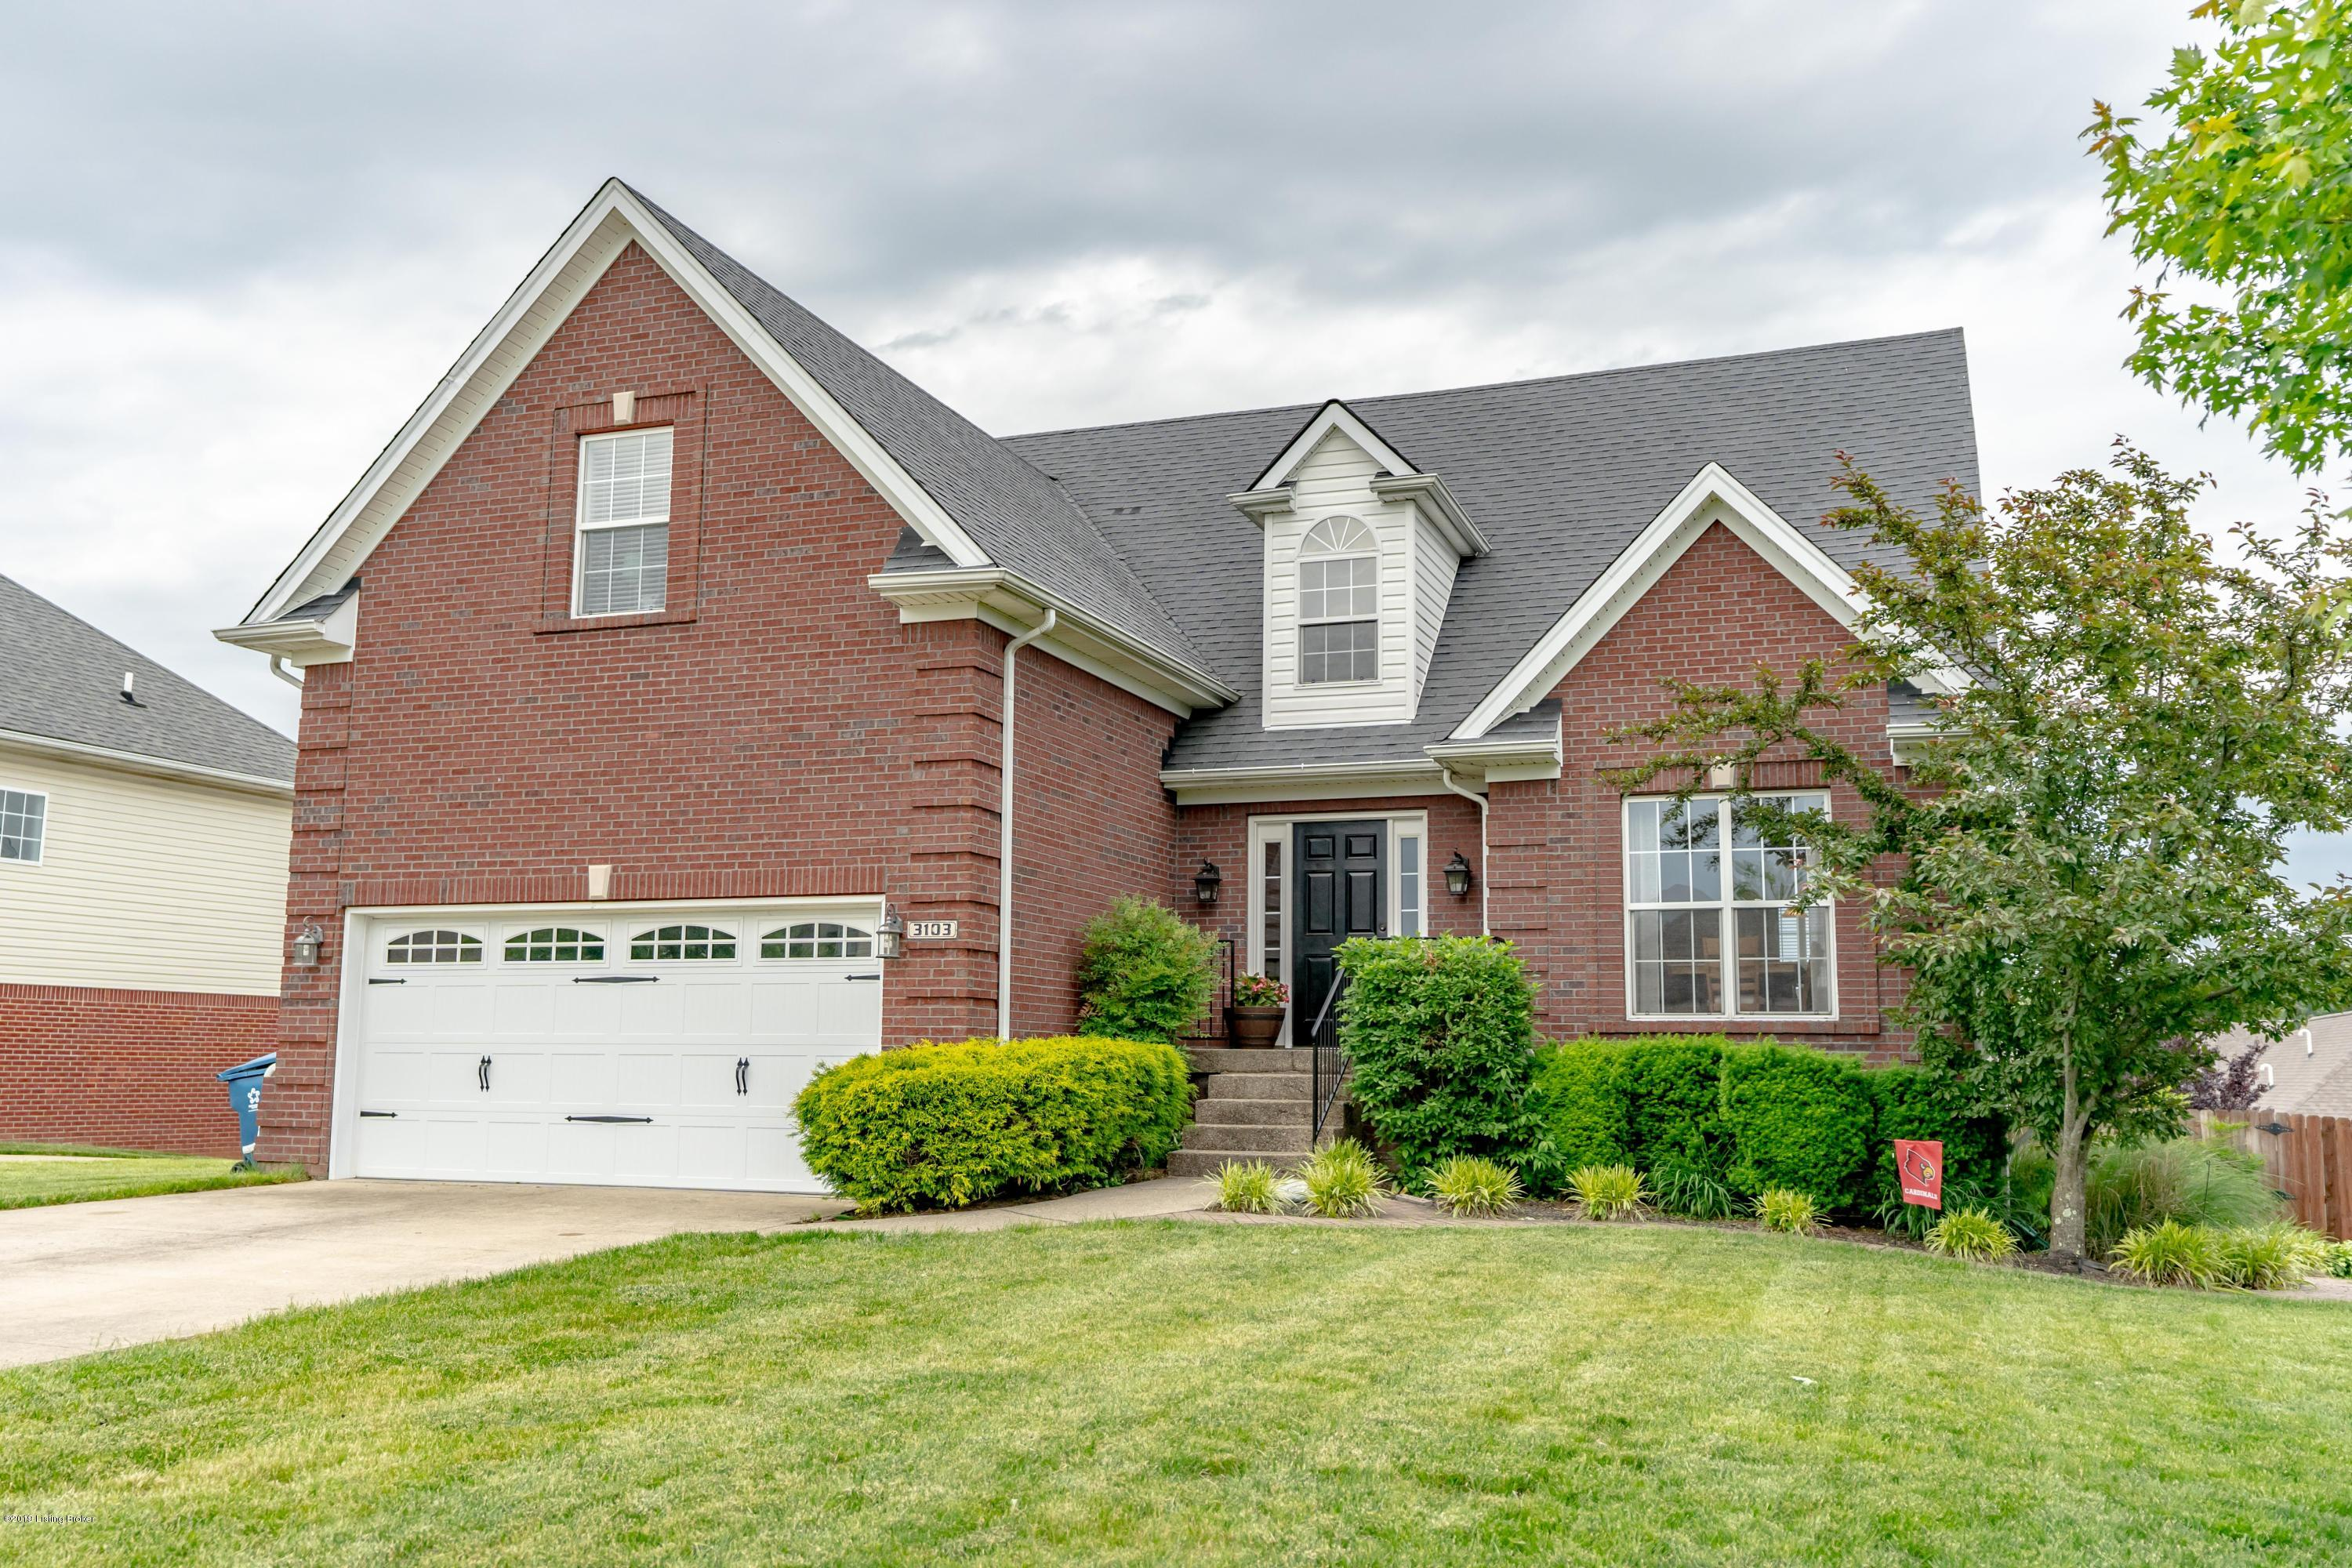 3103 Pheasant Ct, Shelbyville, Kentucky 40065, 5 Bedrooms Bedrooms, 14 Rooms Rooms,4 BathroomsBathrooms,Residential,For Sale,Pheasant,1532816